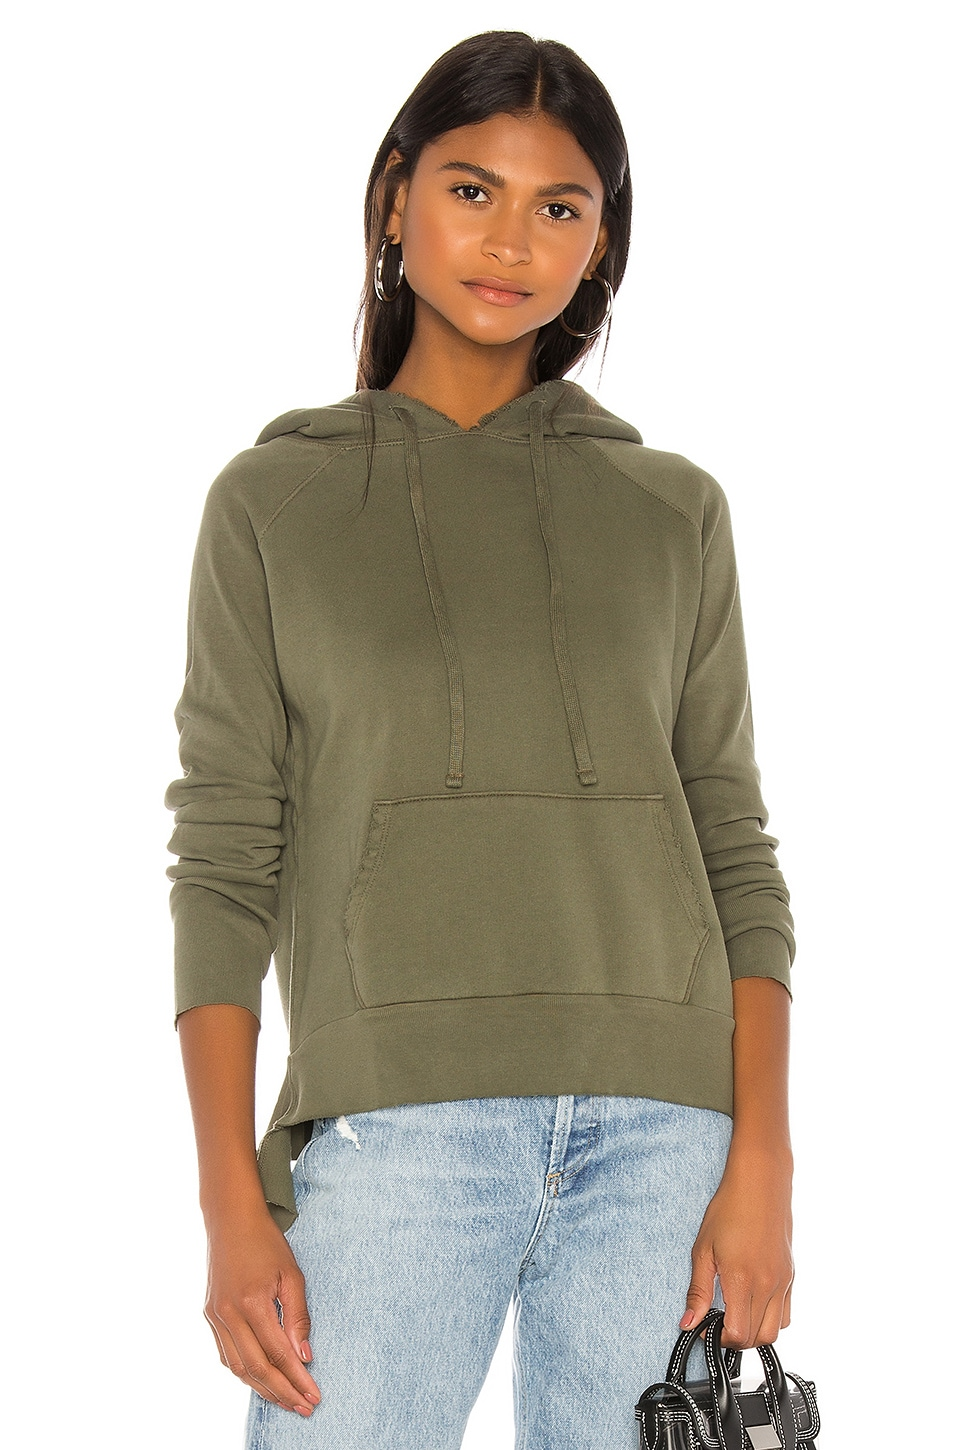 Frank & Eileen tee lab Triple Fleece Hoodie in British Army